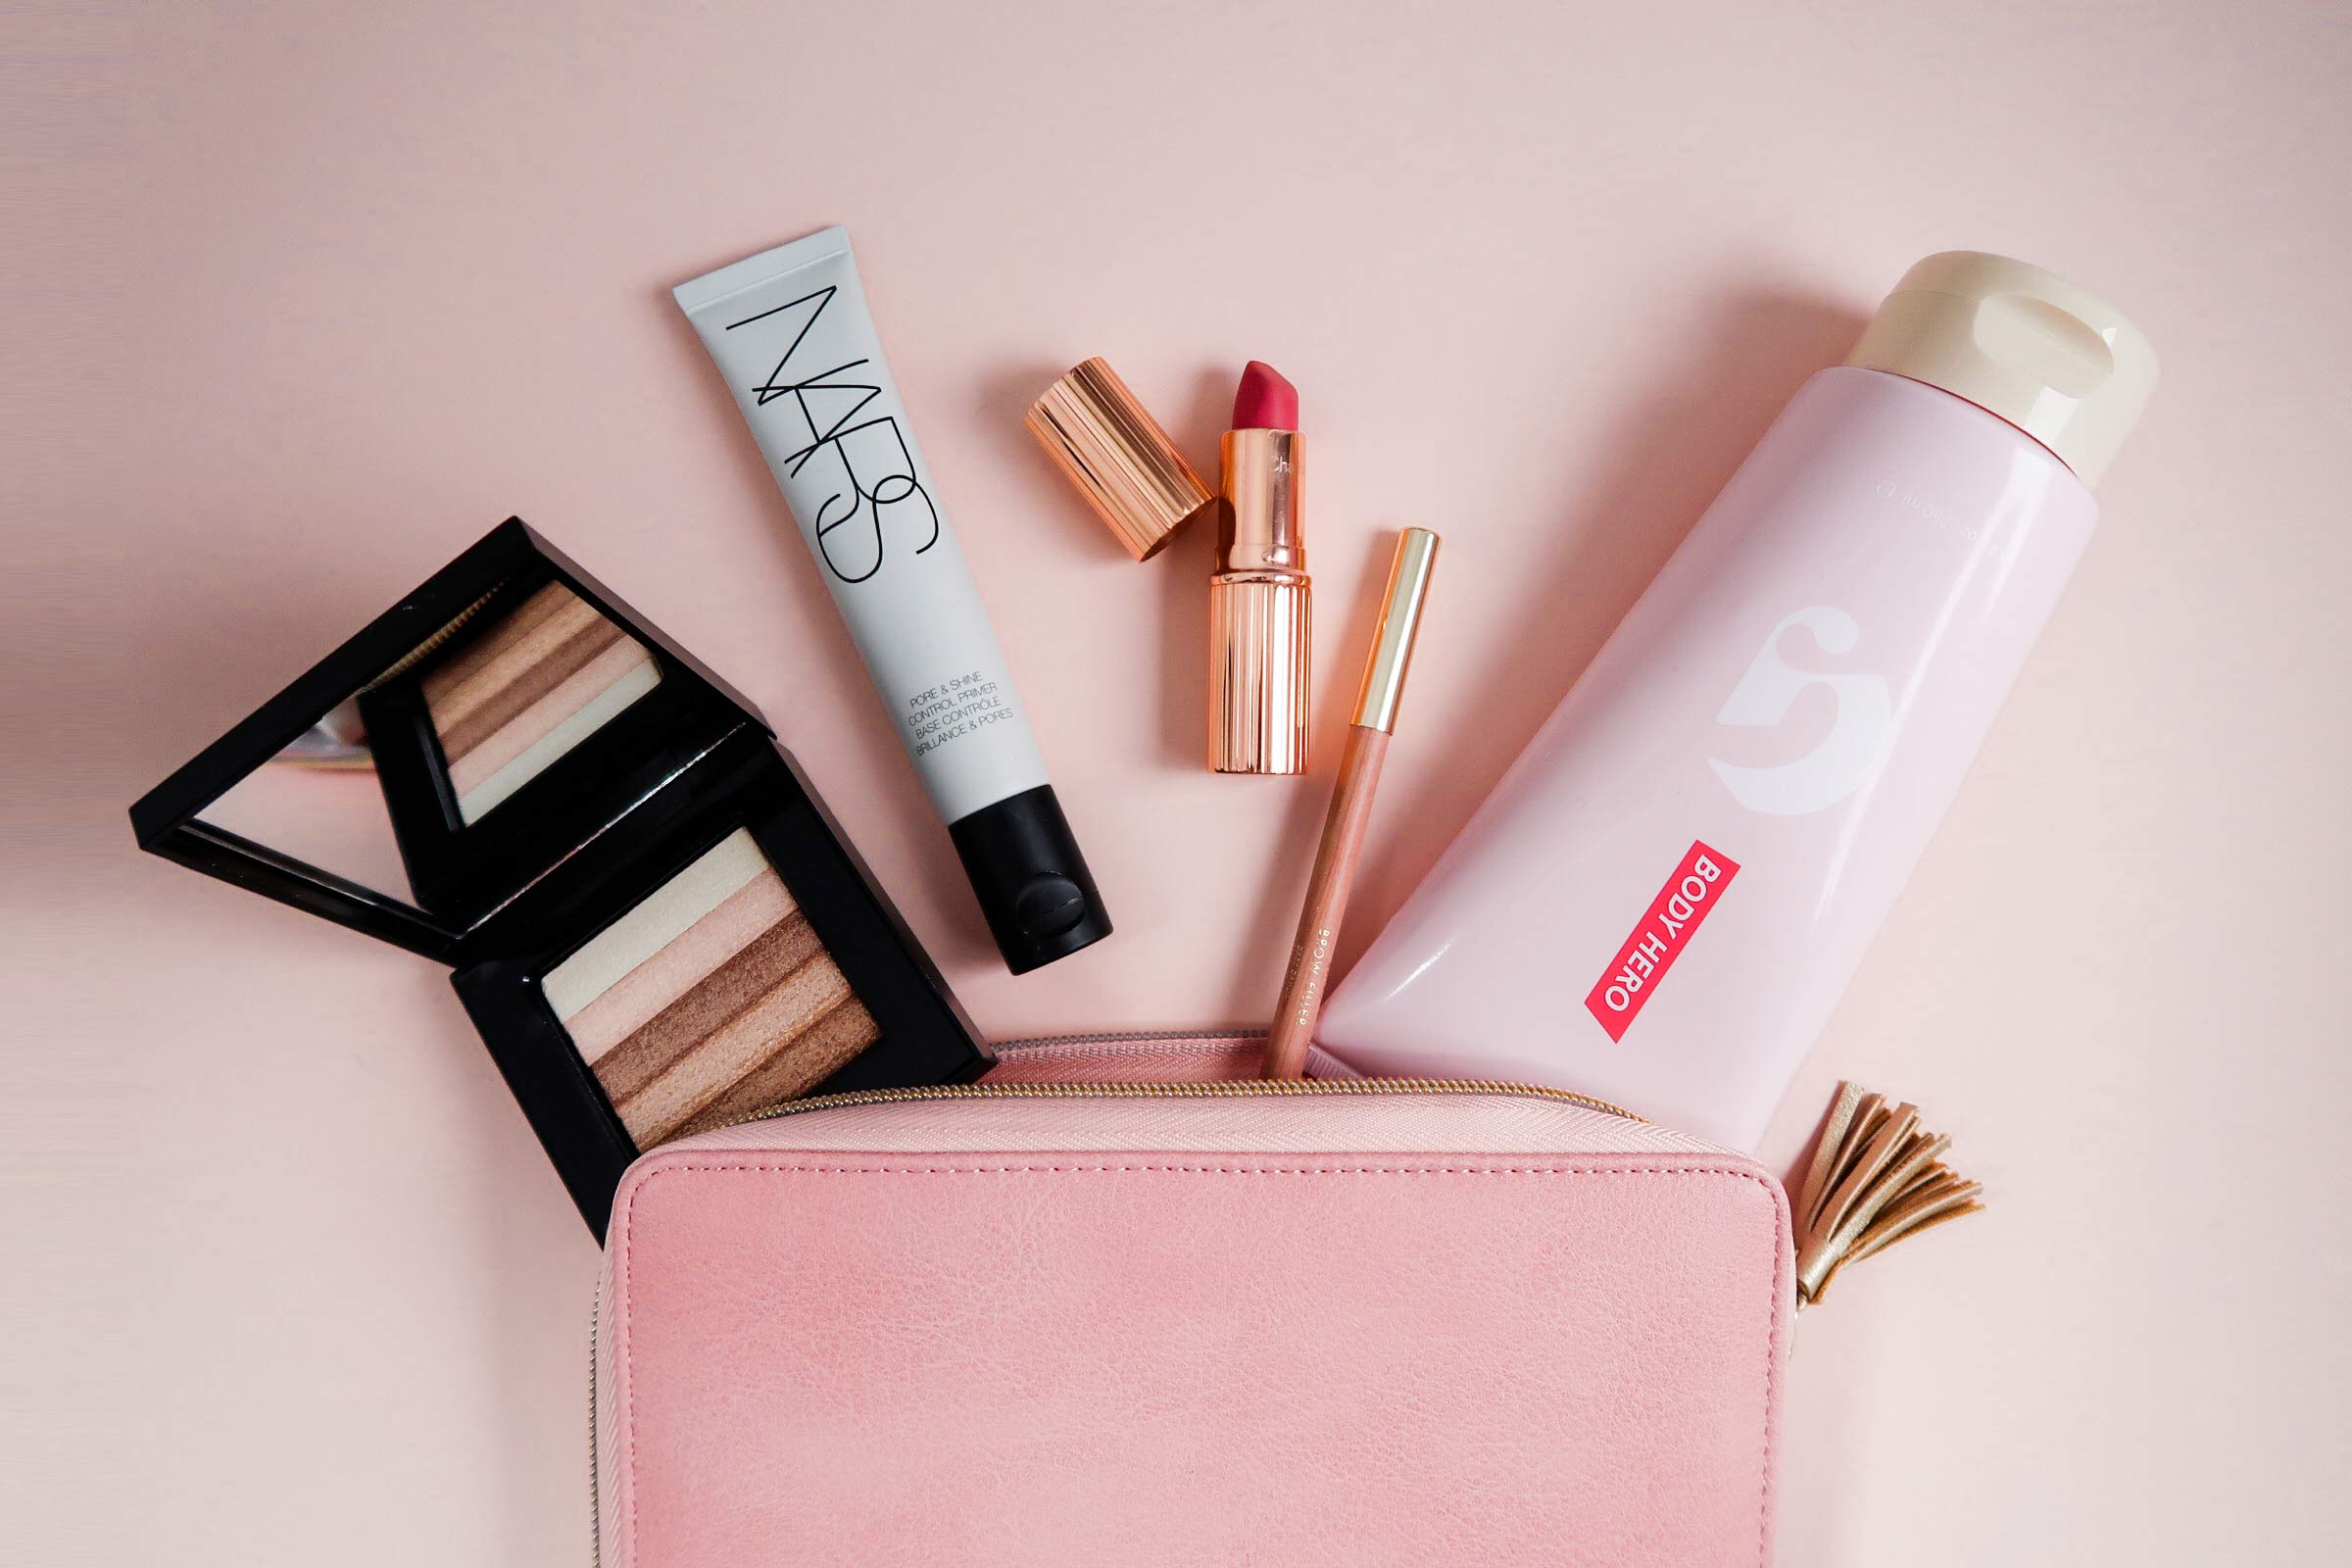 Beauty products I'm loving this month, including Glossier Body Hero lotion, Bobbi Brown highlighter, Charlotte Tilbury matte lipstick, and NARS primer | Sundays and Somedays